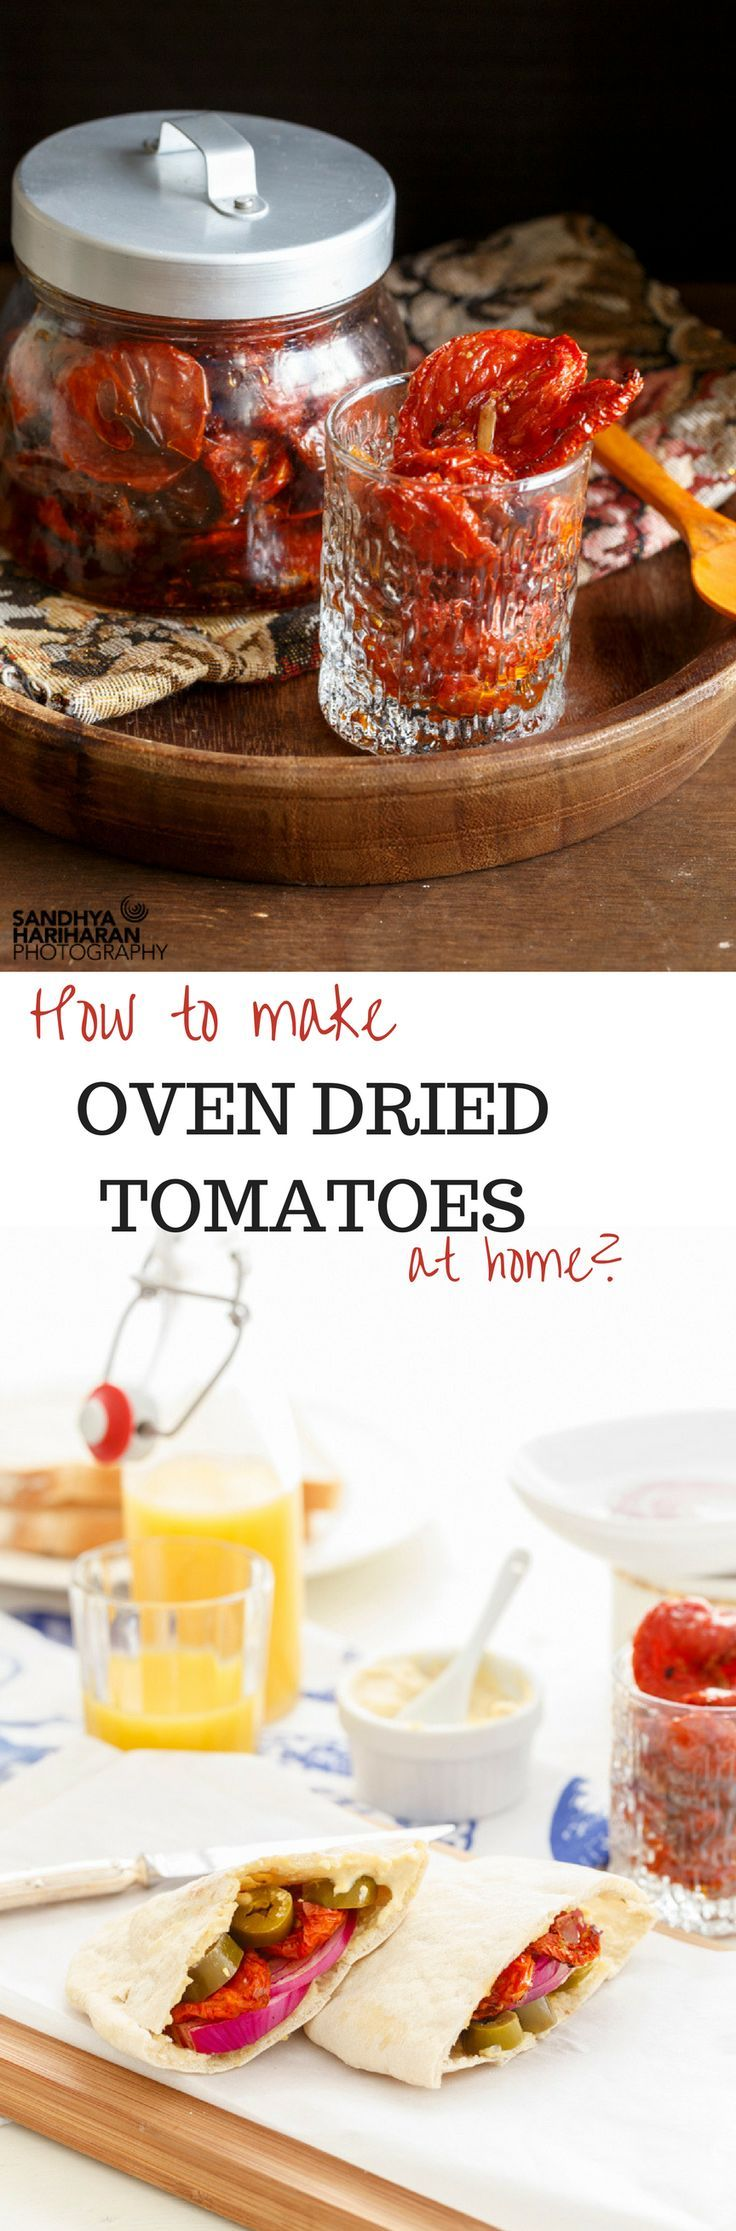 How to Make OVEN DRIED TOMATOES at home?